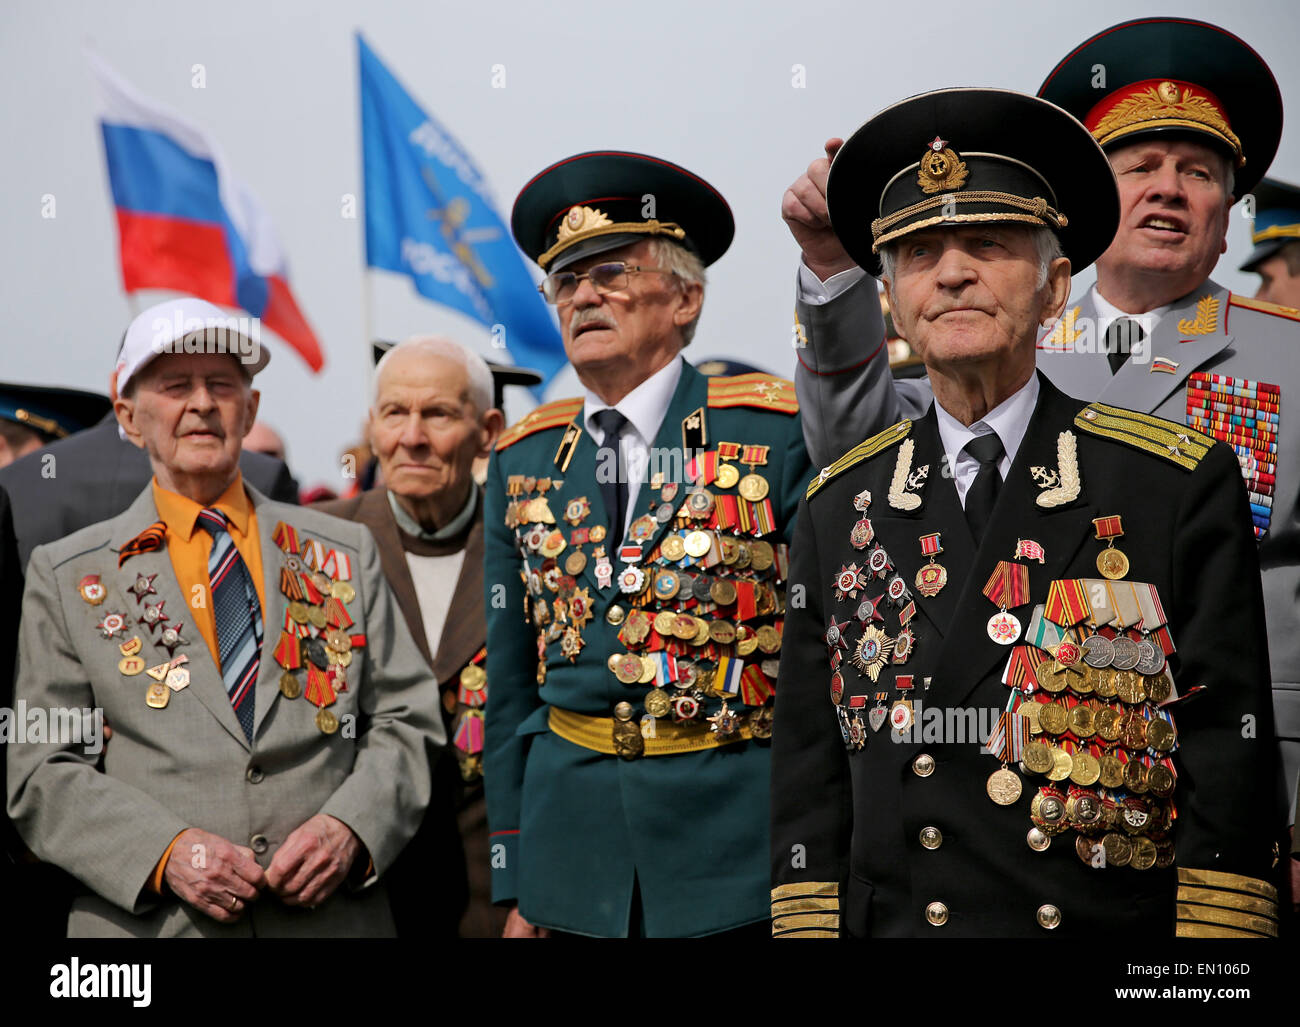 Torgau, Germany. 25th Apr, 2015. Russian veterans with multiple military decorations attend a ceremony entitled Stock Photo